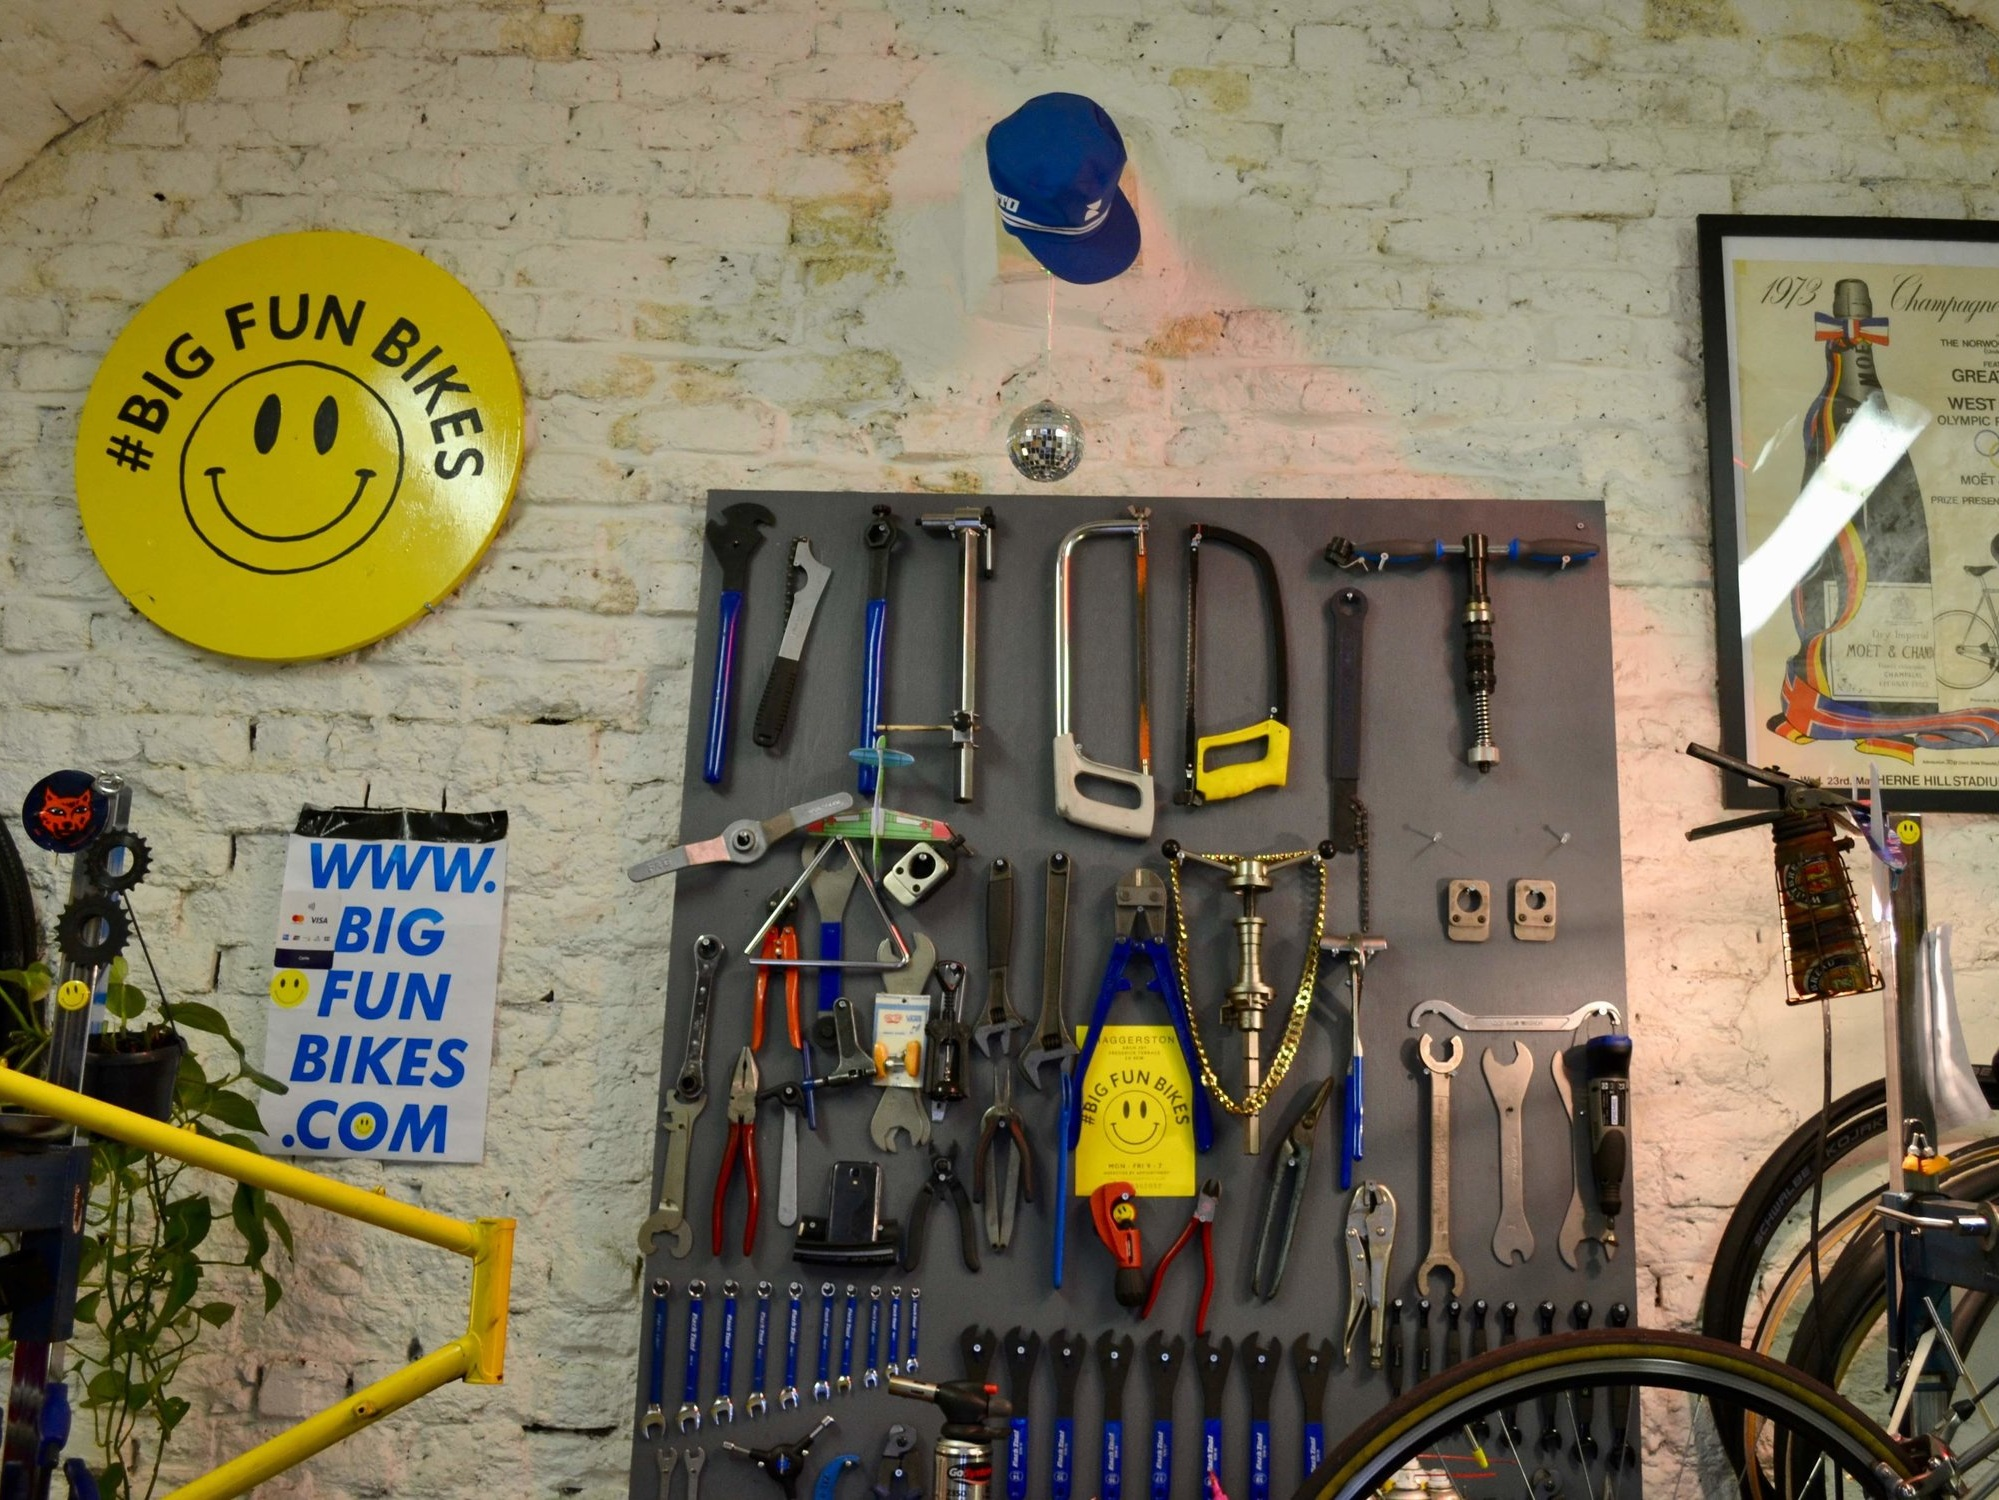 bike-workshop-hackney-puncture.jpg